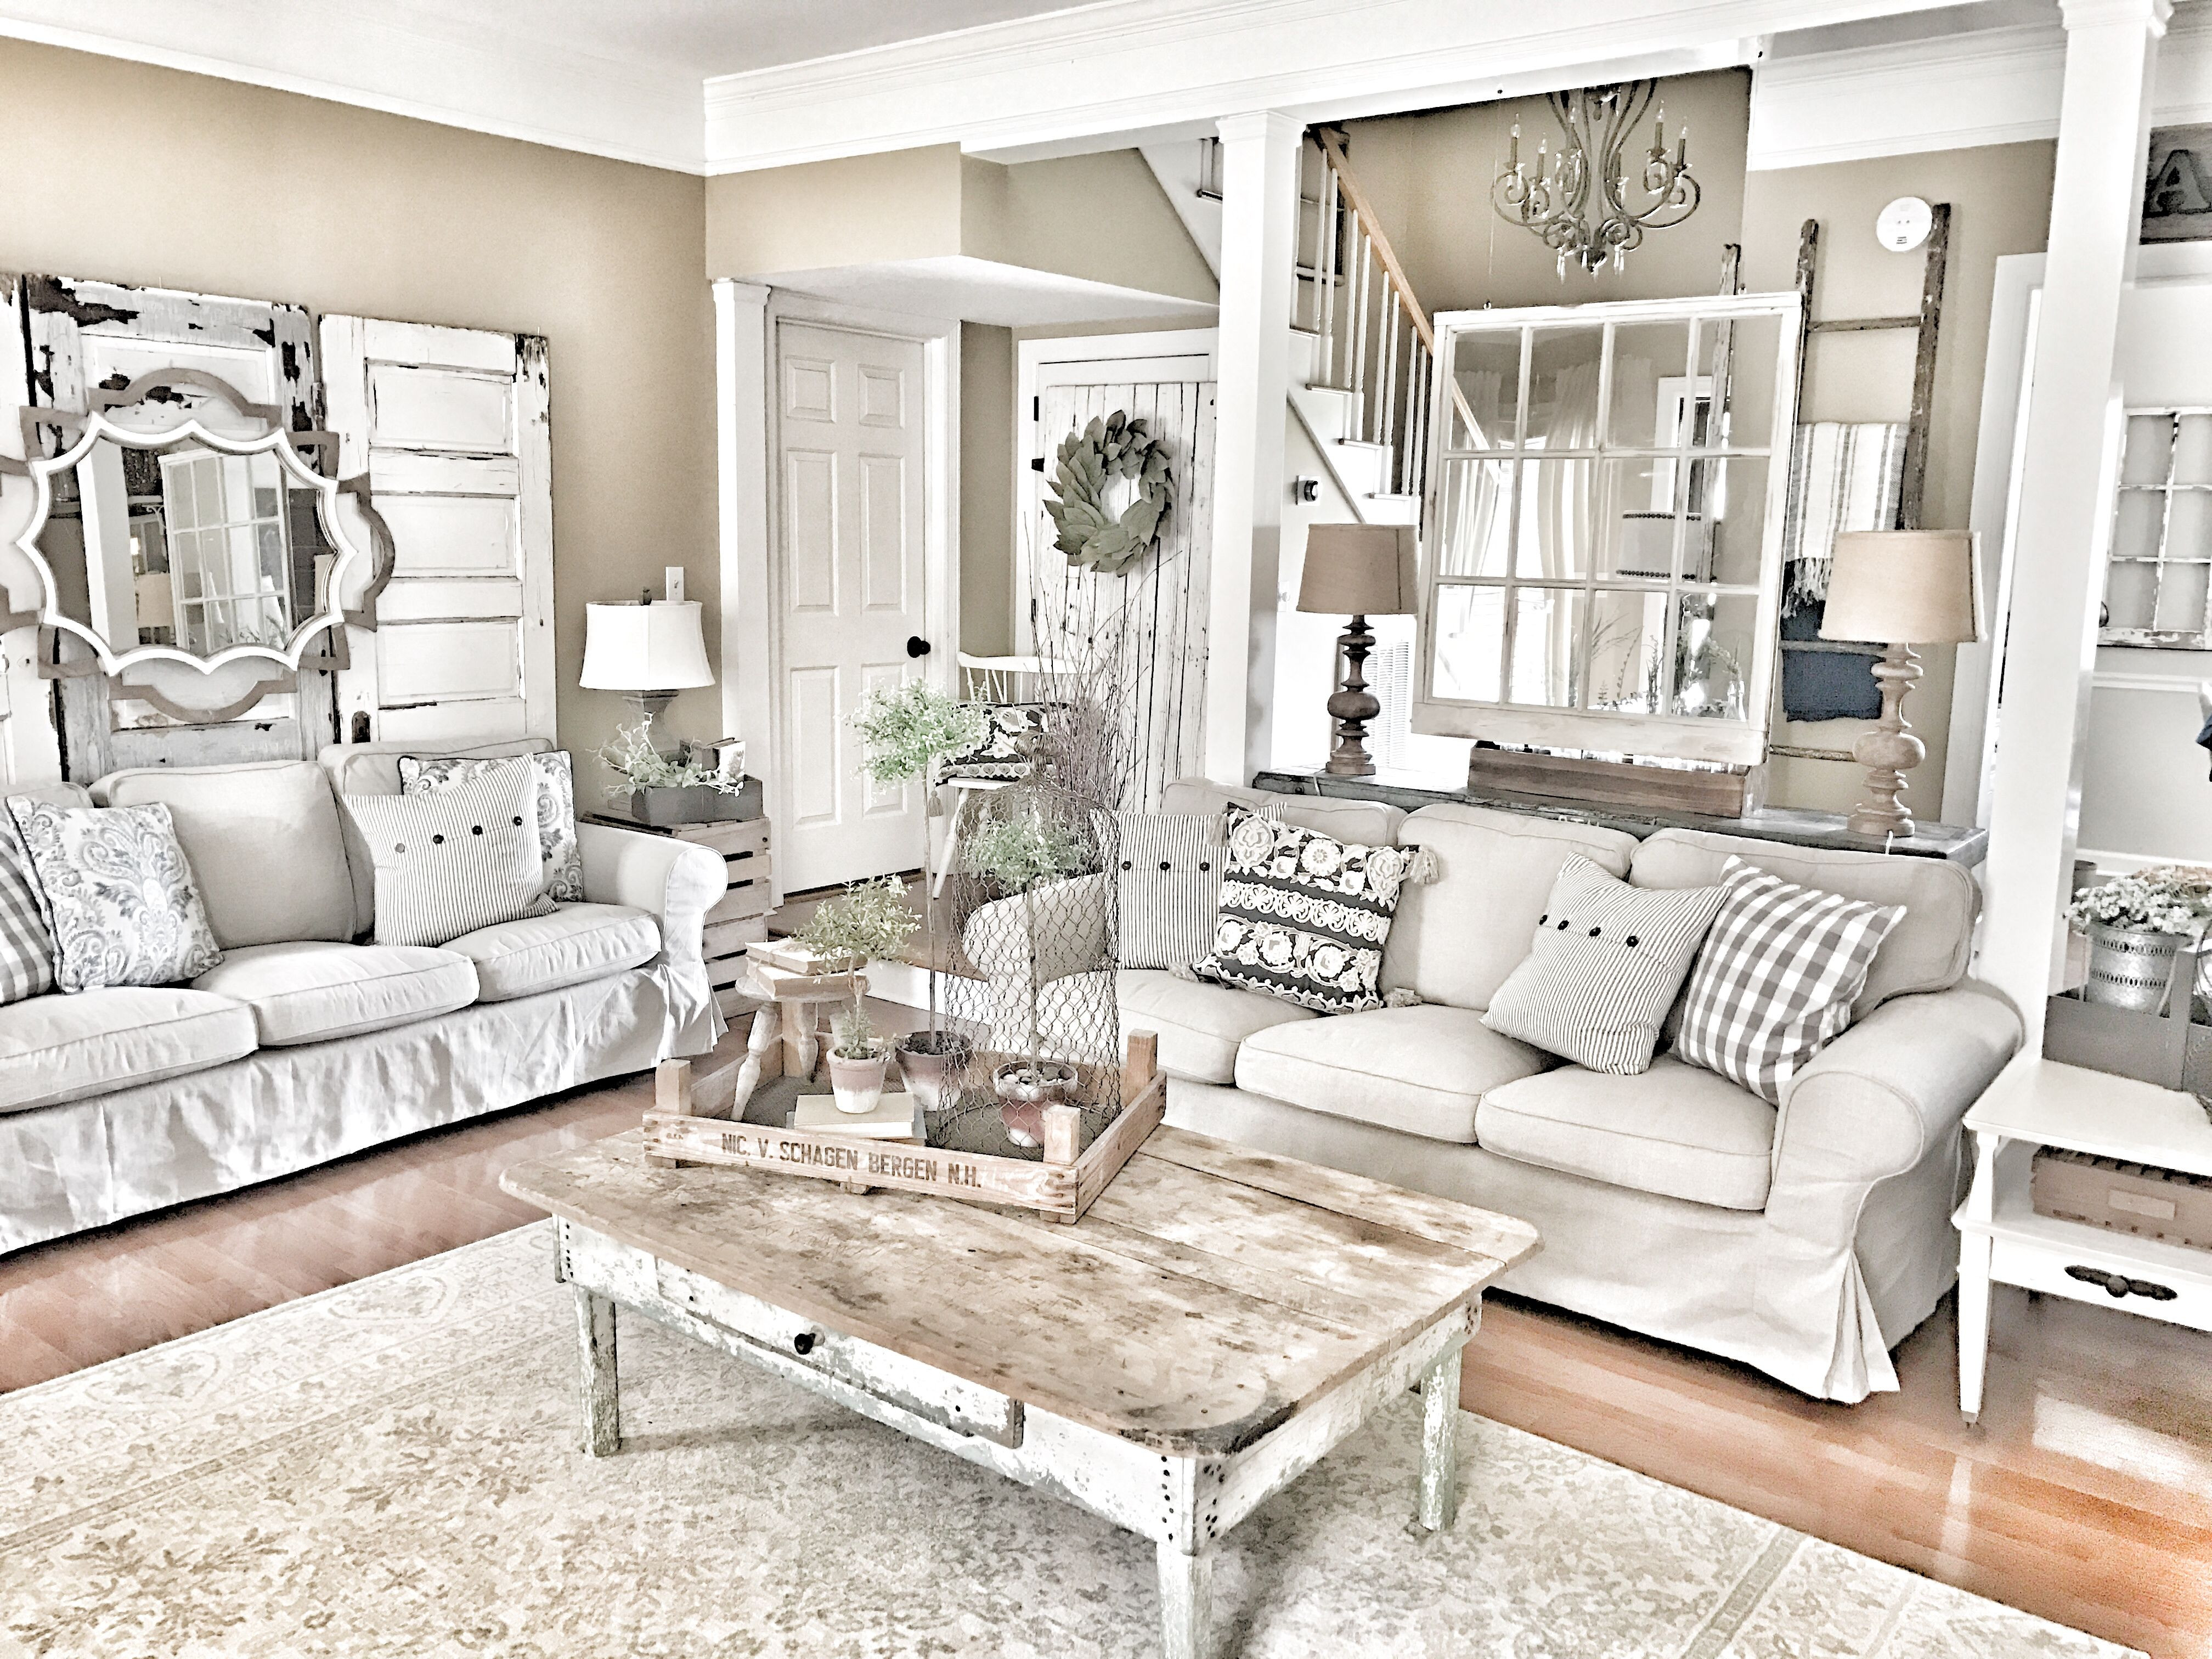 Best ideas about Farmhouse Style Living Room Furniture . Save or Pin Farmhouse living room IKEA Ektorp couches IG bless this Now.